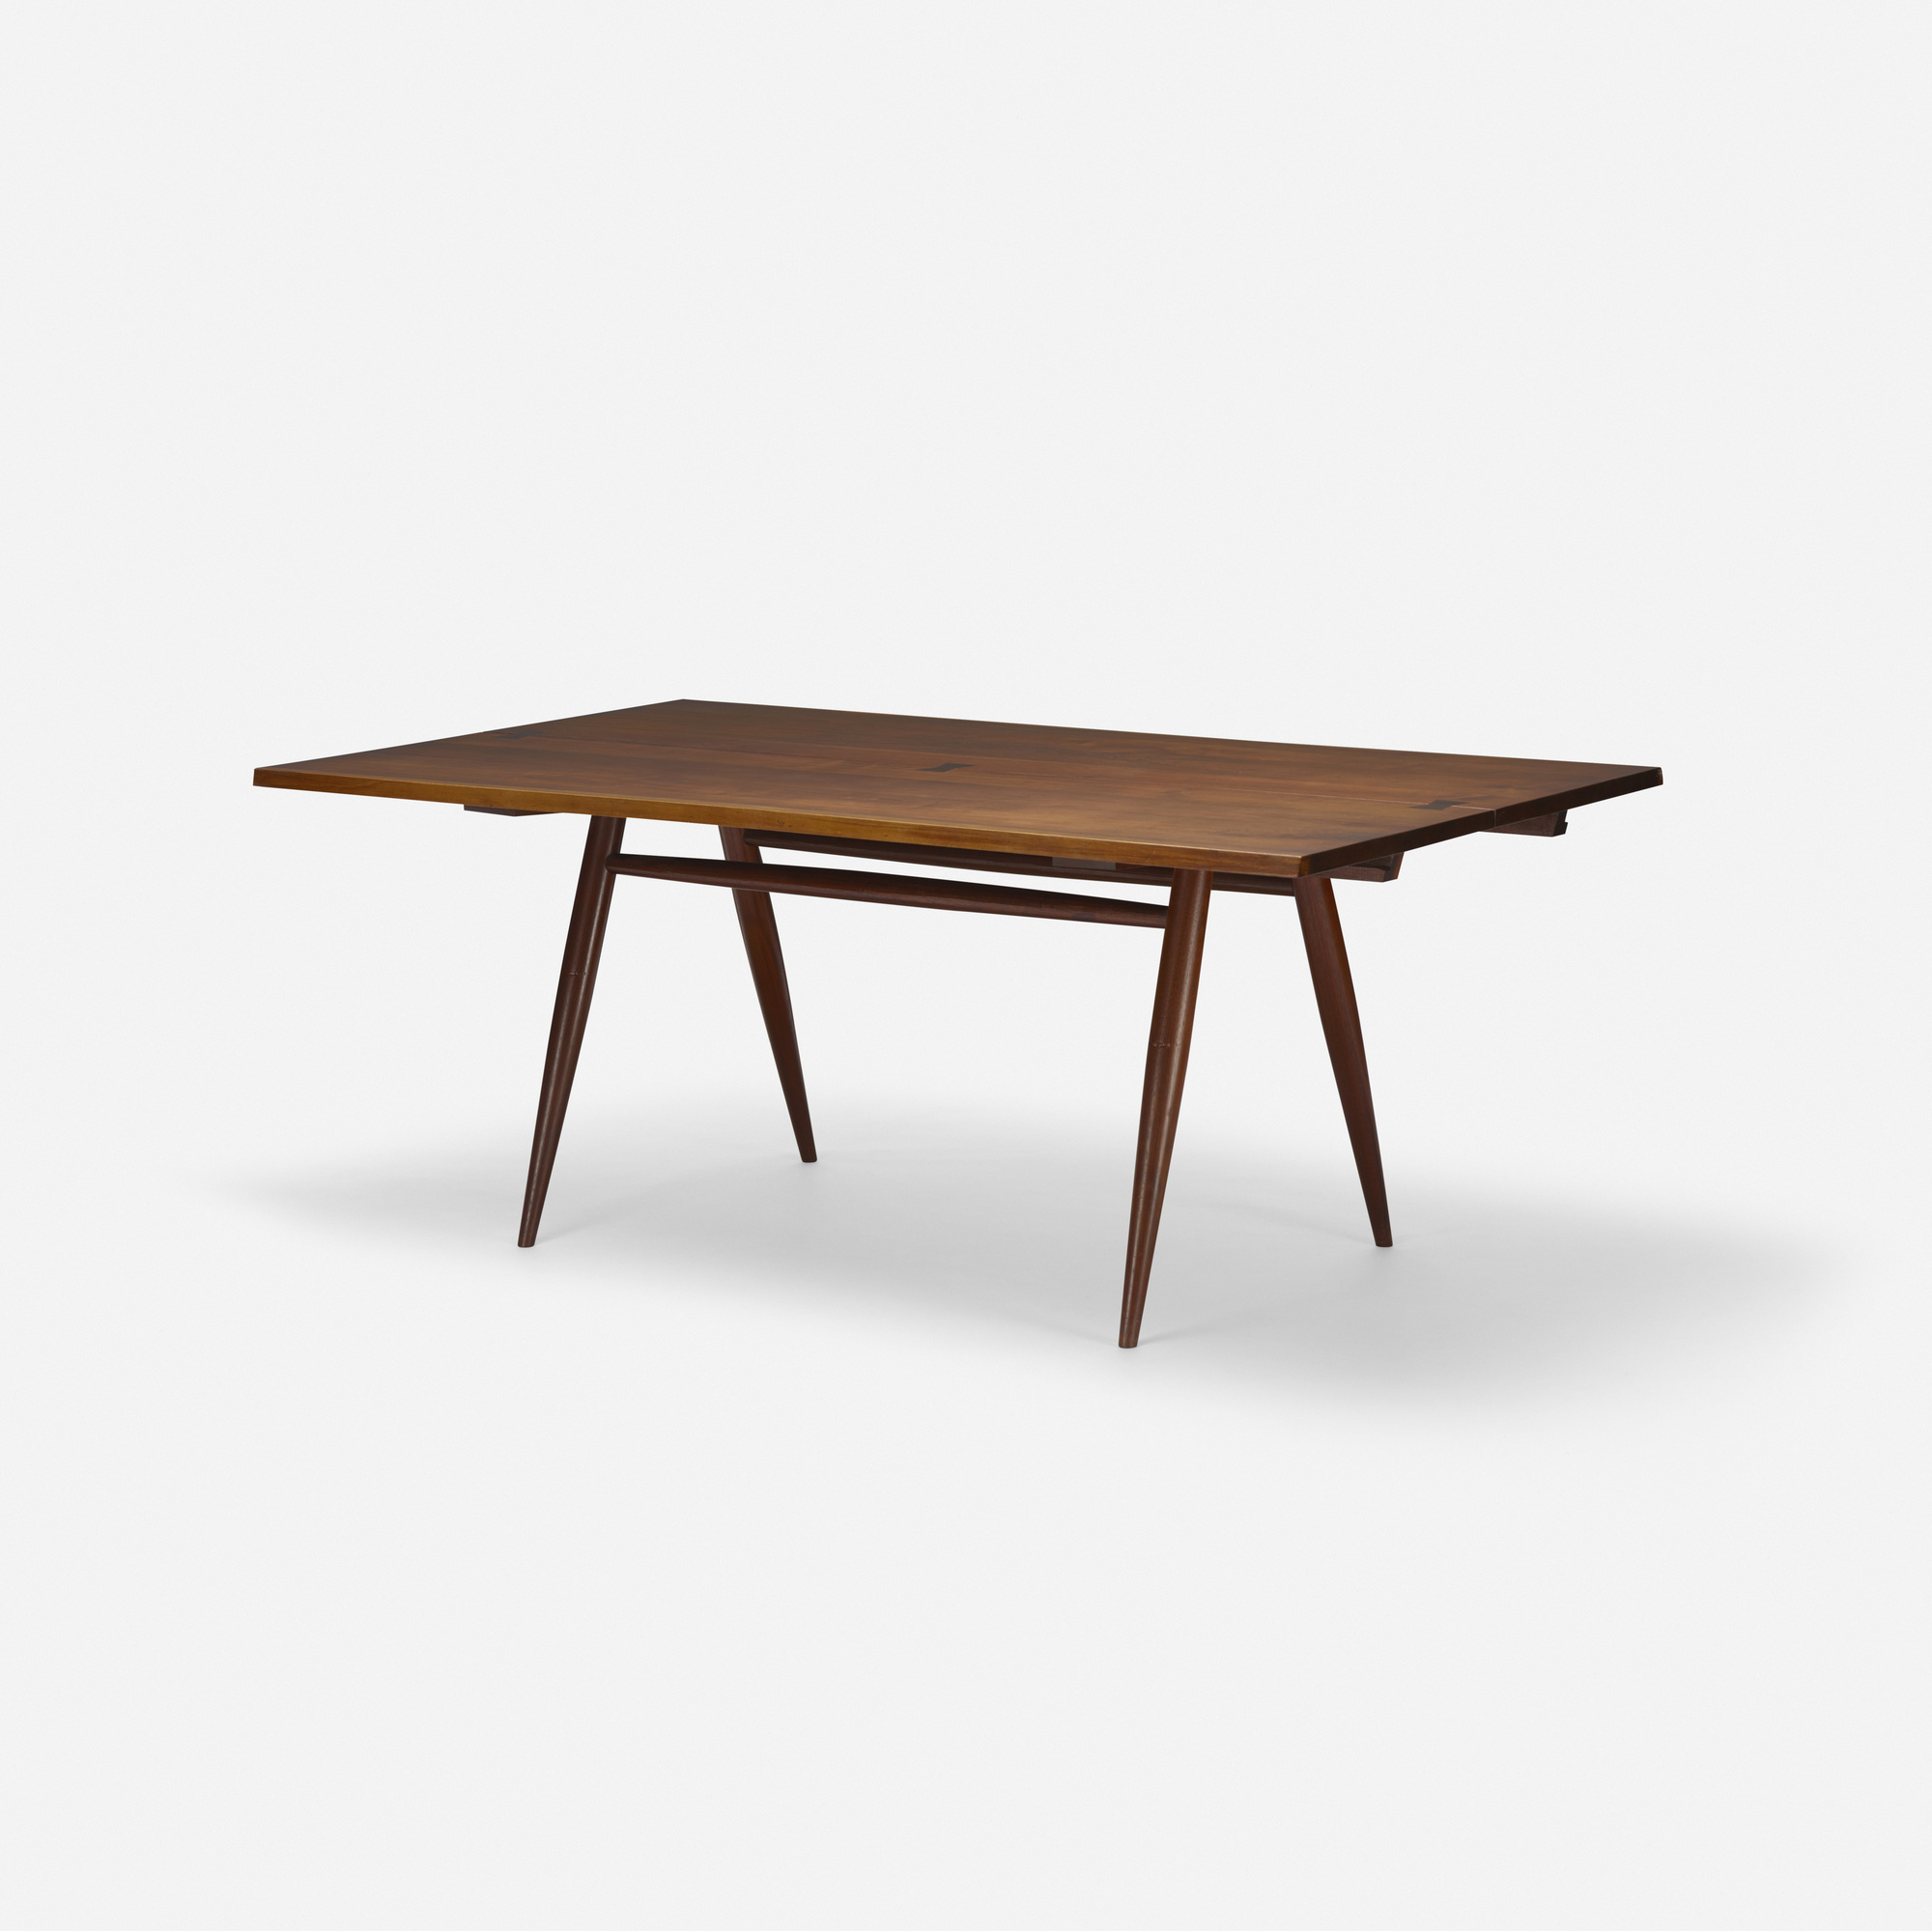 133: George Nakashima / Turned leg dining table (2 of 3)